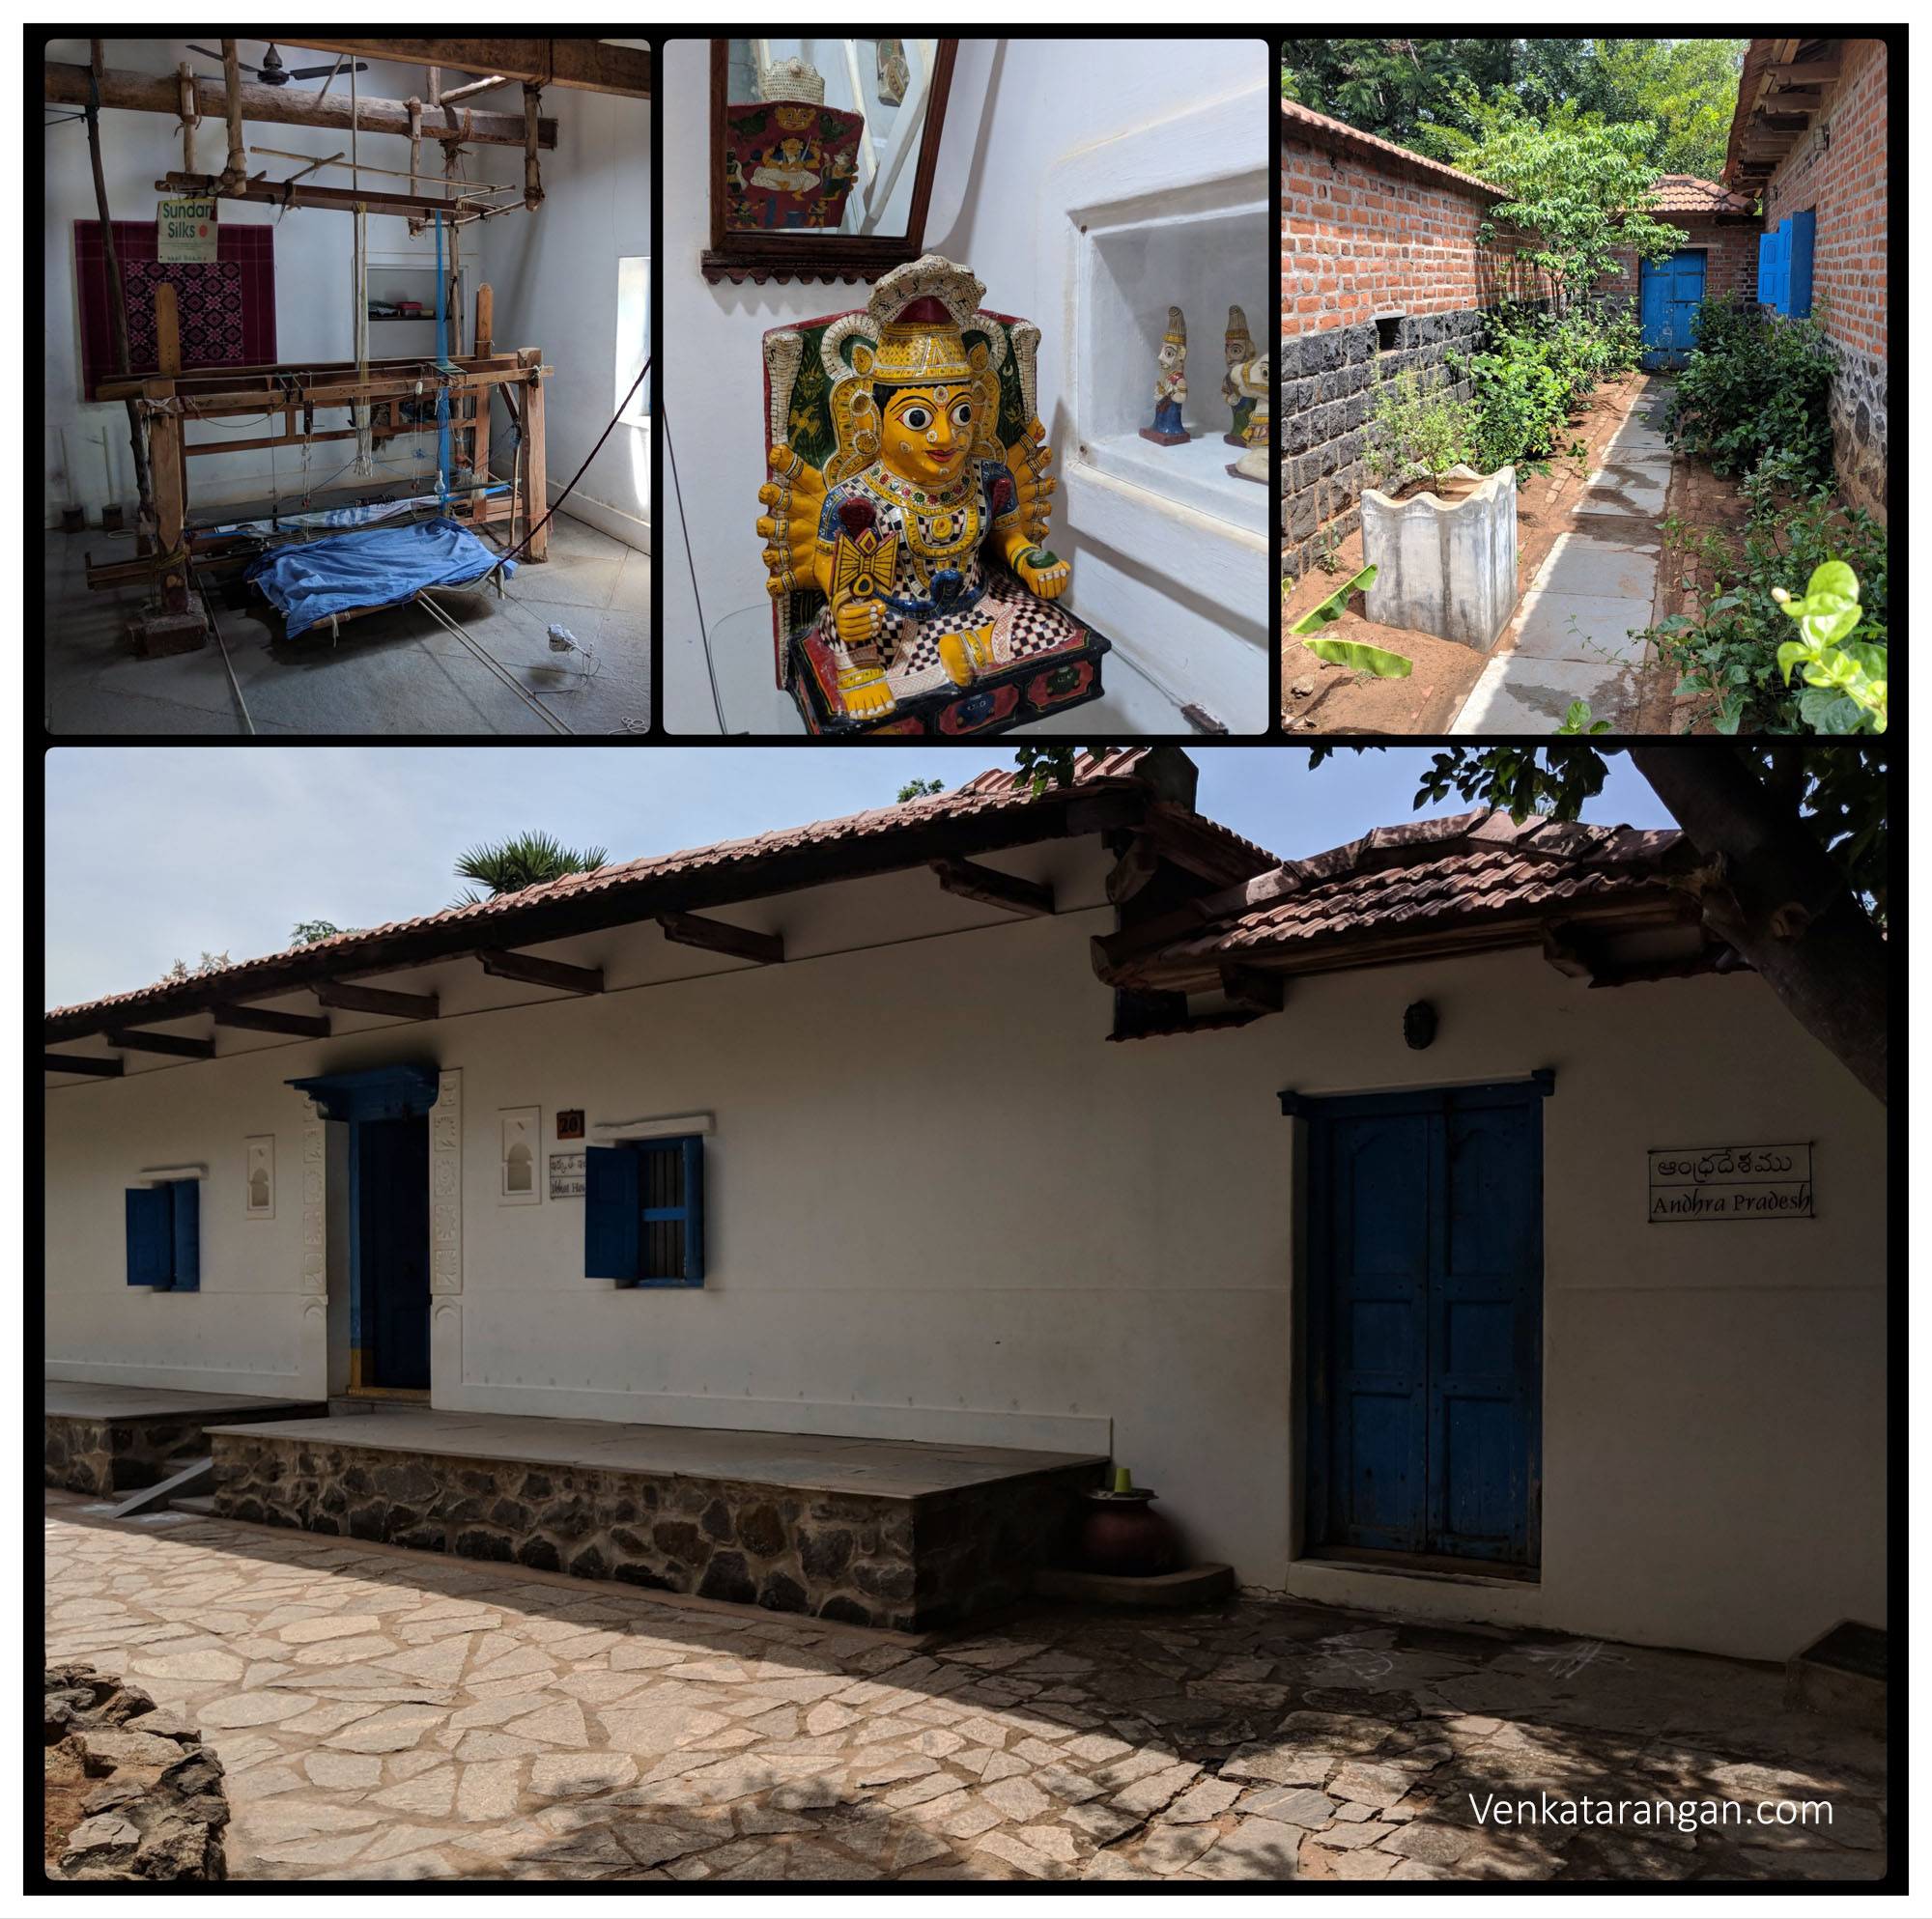 Andhra Pradesh - Ikkat House with their weaving machinery, Goddess & Backyard